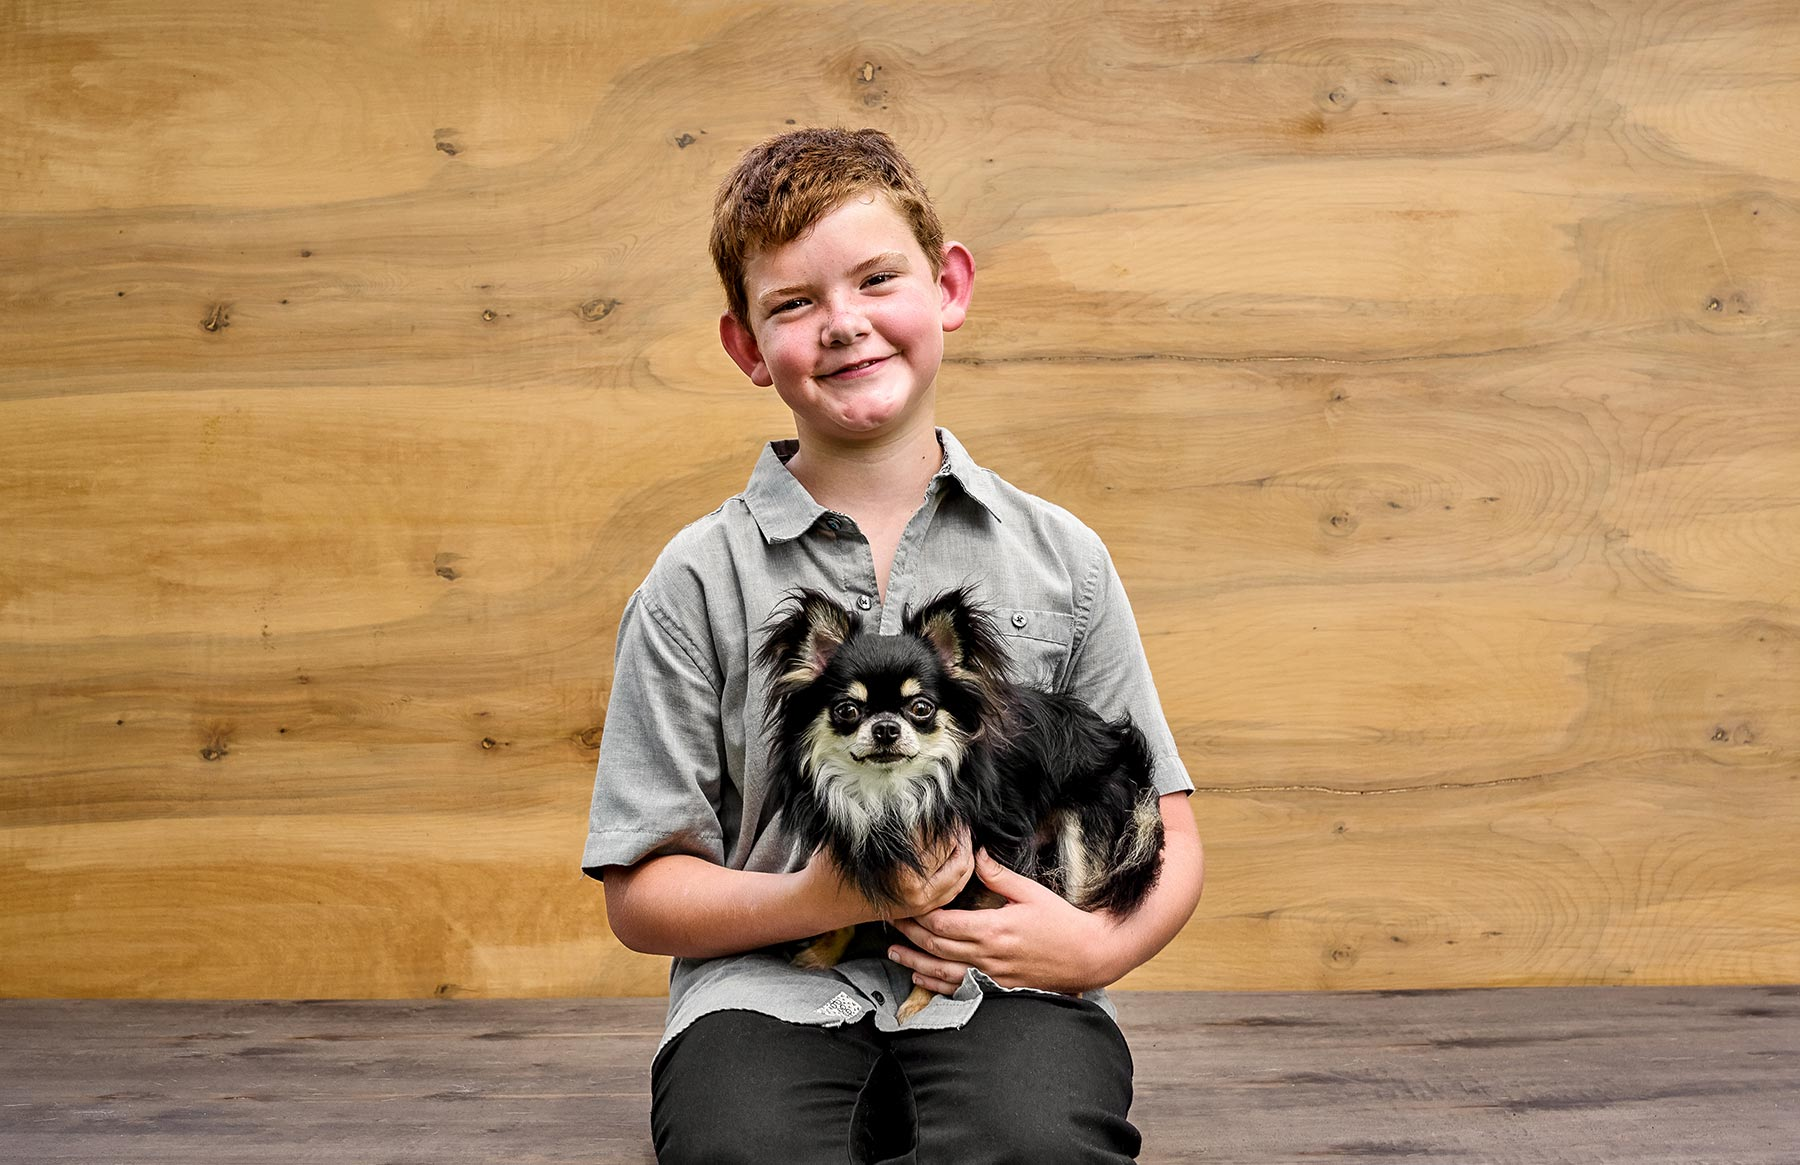 A-young-boy-holding-a-fluffy-black-and-white-dog-against-a-wooden-background